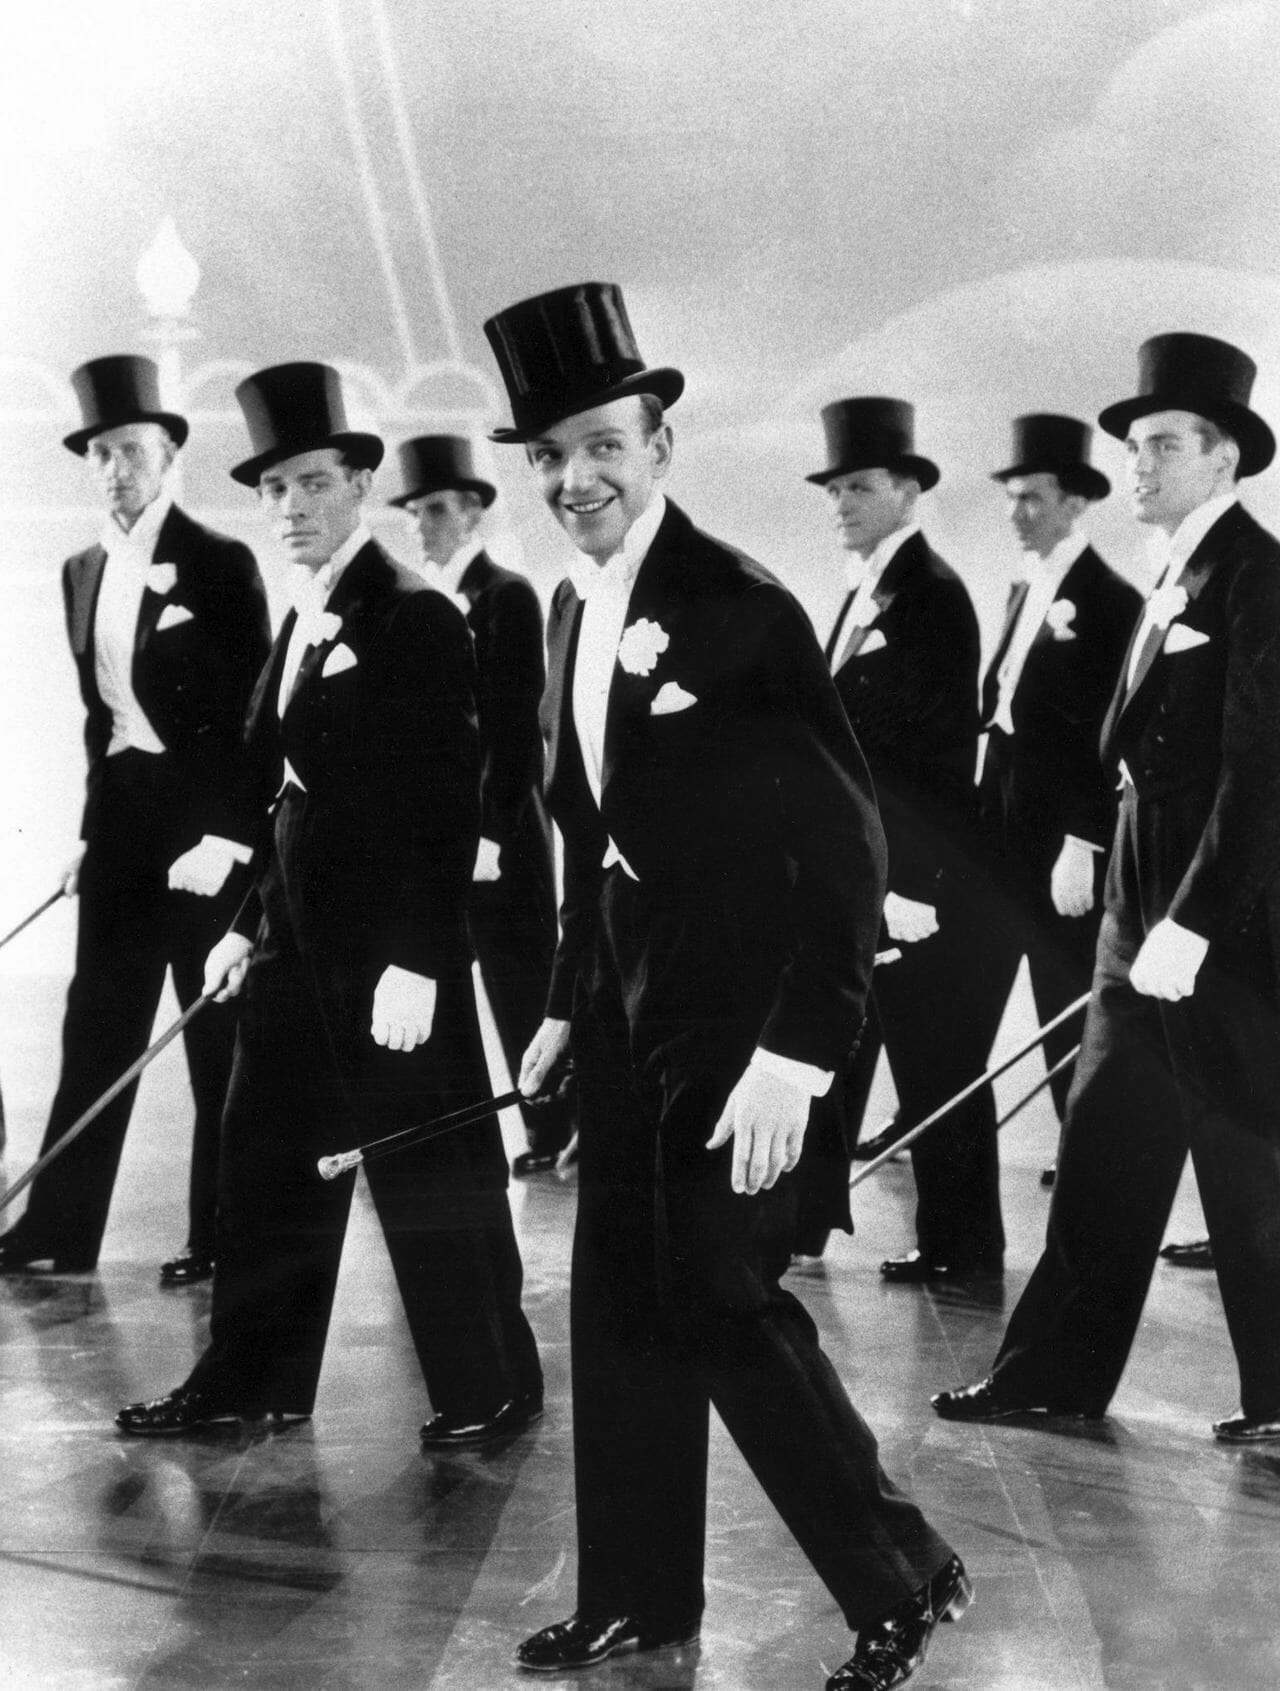 Fred Astaire dancing in white tie